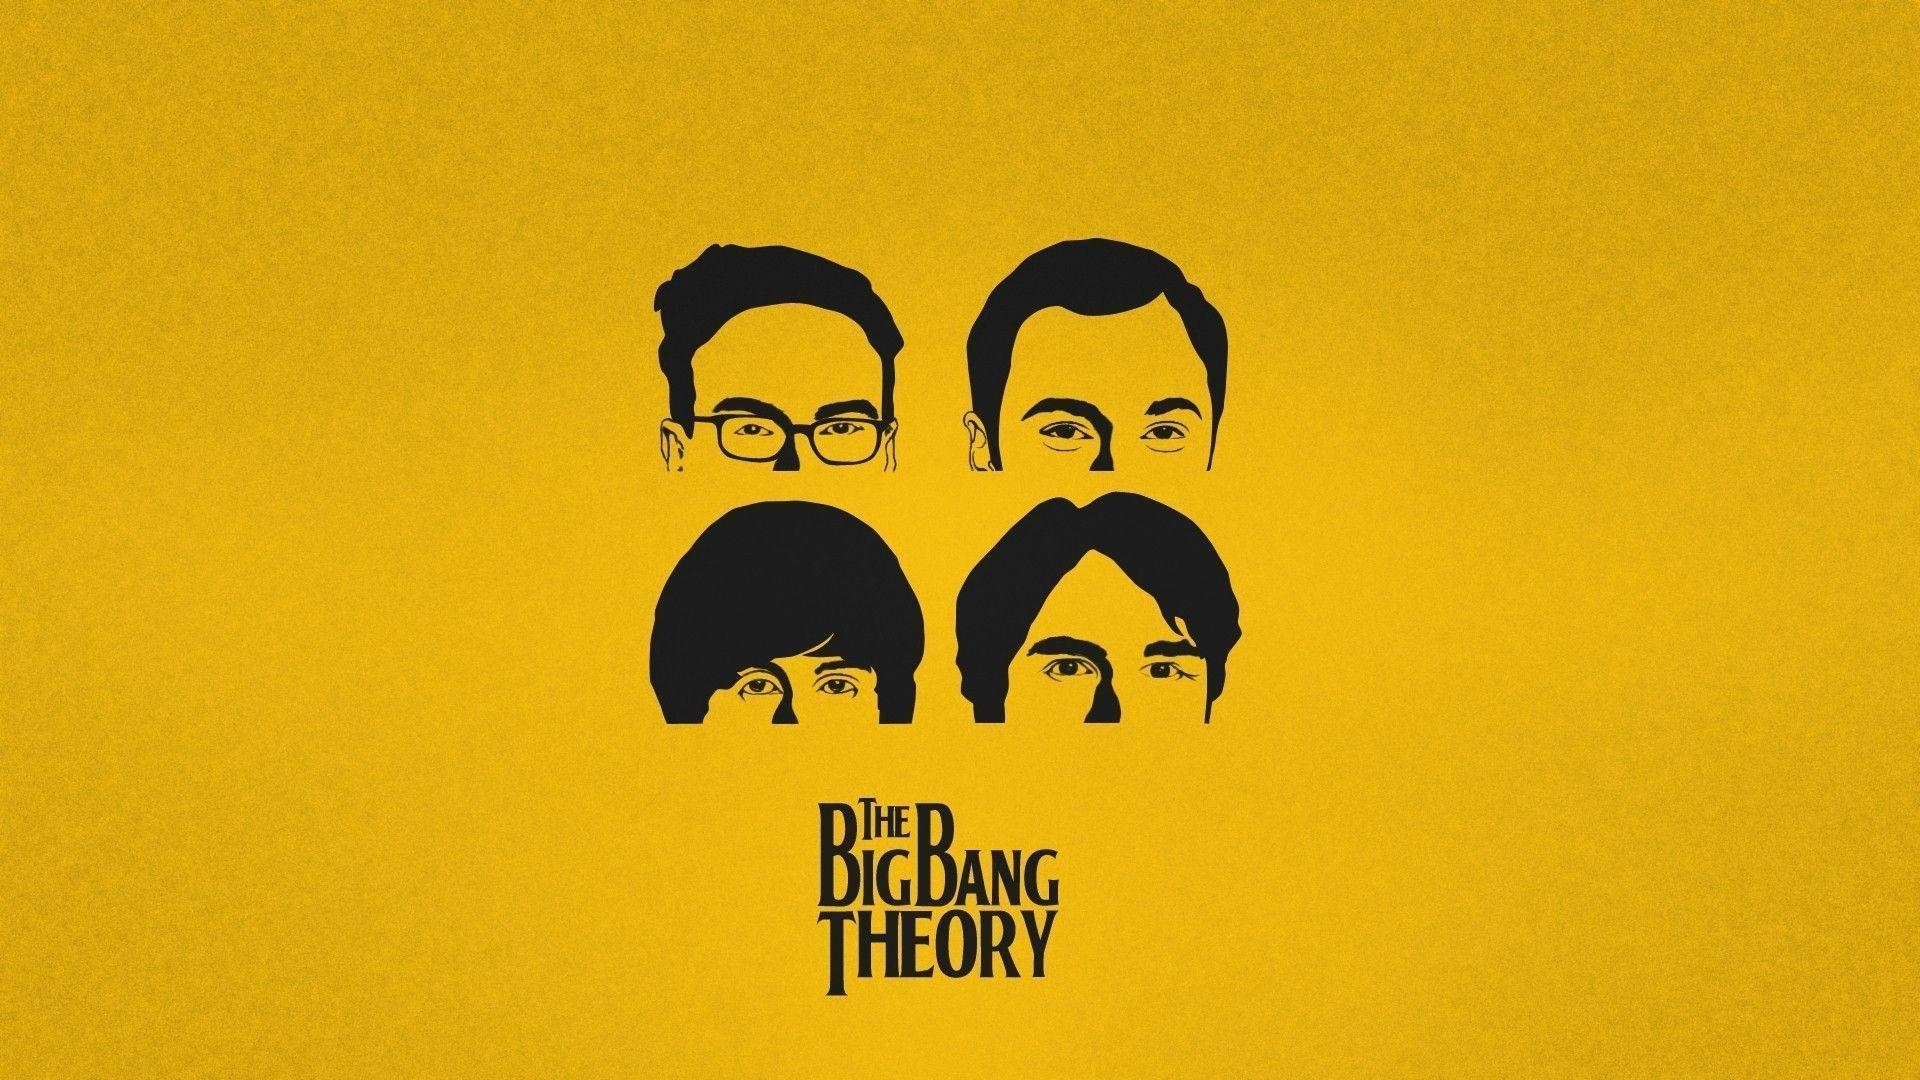 the big bang theory wallpapers - wallpaper cave